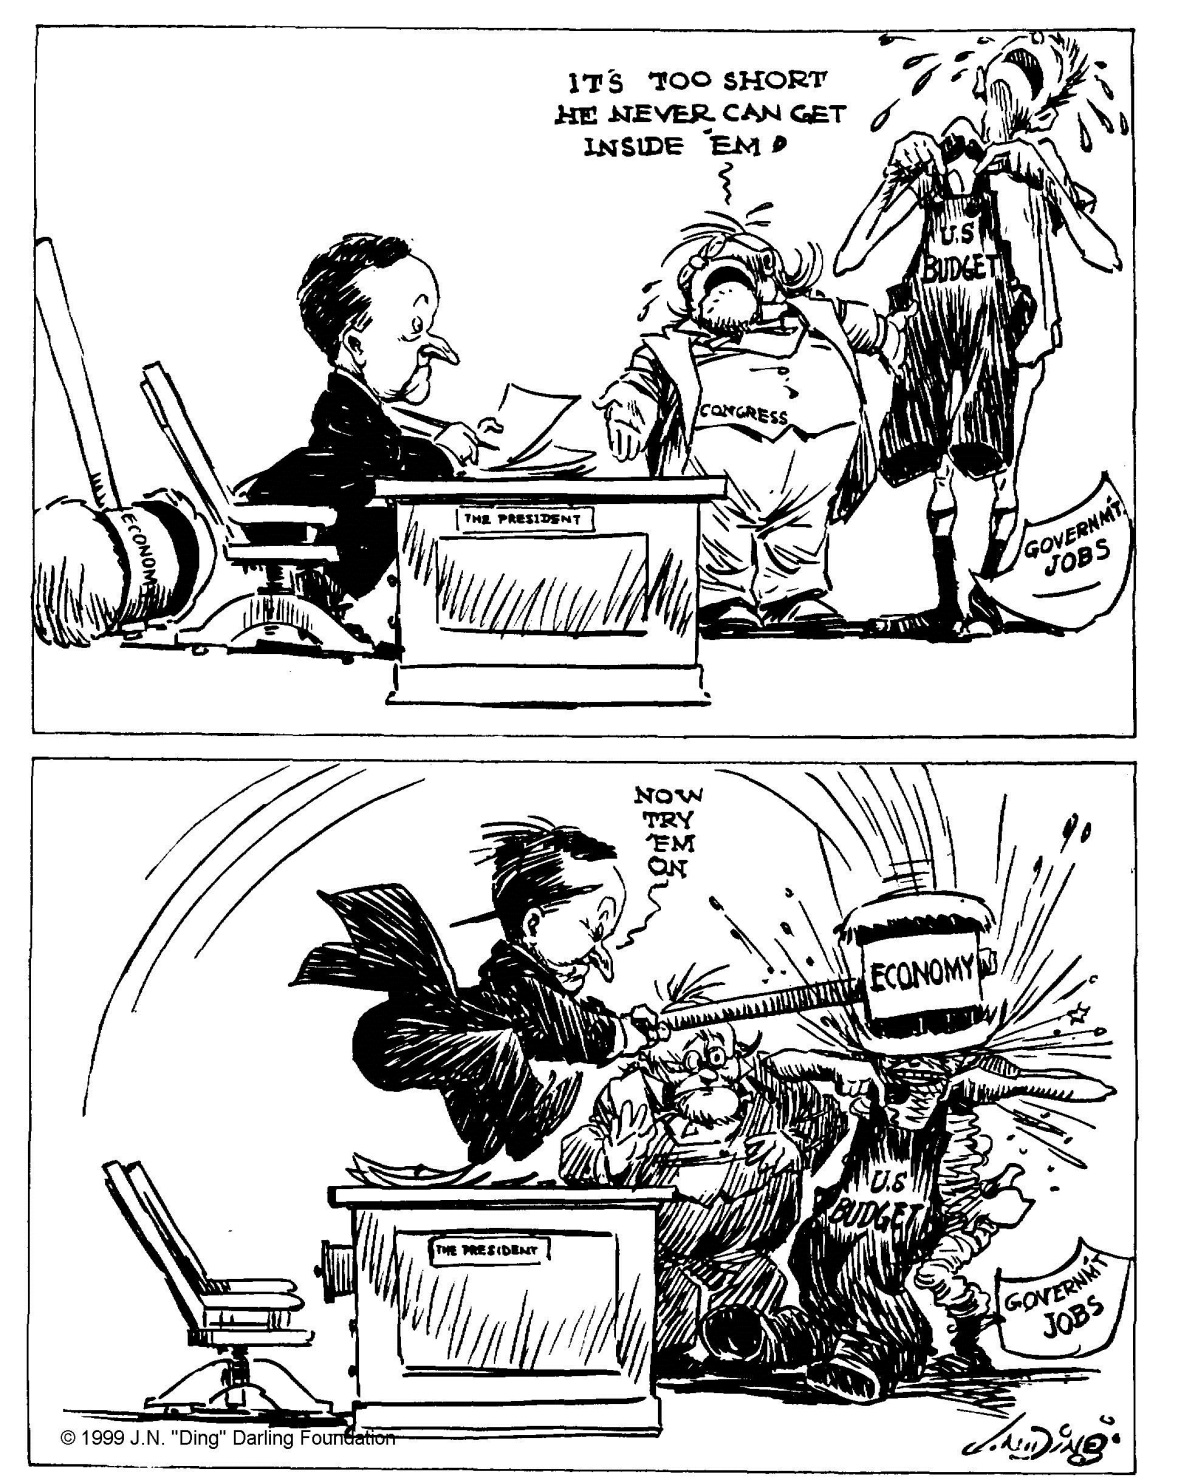 """If the budget is too small for the expenses, cut down the expenses,"" by ""Ding"" Darling, Des Moines Register, January 30, 1925. It was at the next meeting in June that year, Coolidge delved into the matter of States and the Federal Budget, ""Unfortunately the Federal Government has strayed far afield from its legitimate business. It has trespassed upon fields where there should be no trespass. If we could confine our Federal expenditures to the legitimate obligations and functions of the Federal Government a material reduction would be apparent. But far more important than this would be its effect upon the fabric of our constitutional form of government, which tends to be gradually weakened and undermined by this encroachment. The cure for this is not in our hands. It lies with the people. It will come when they realize the necessity of State assumption of State responsibility. It will come when they realize that the laws under which the Federal Government hands out contributions to the States is placing upon them a double burden of taxation - Federal taxation in the first instance to raise the moneys which the Government donates to the States, and State taxation in the second instance to meet the extravagances of State expenditures which are tempted by the Federal donations."""